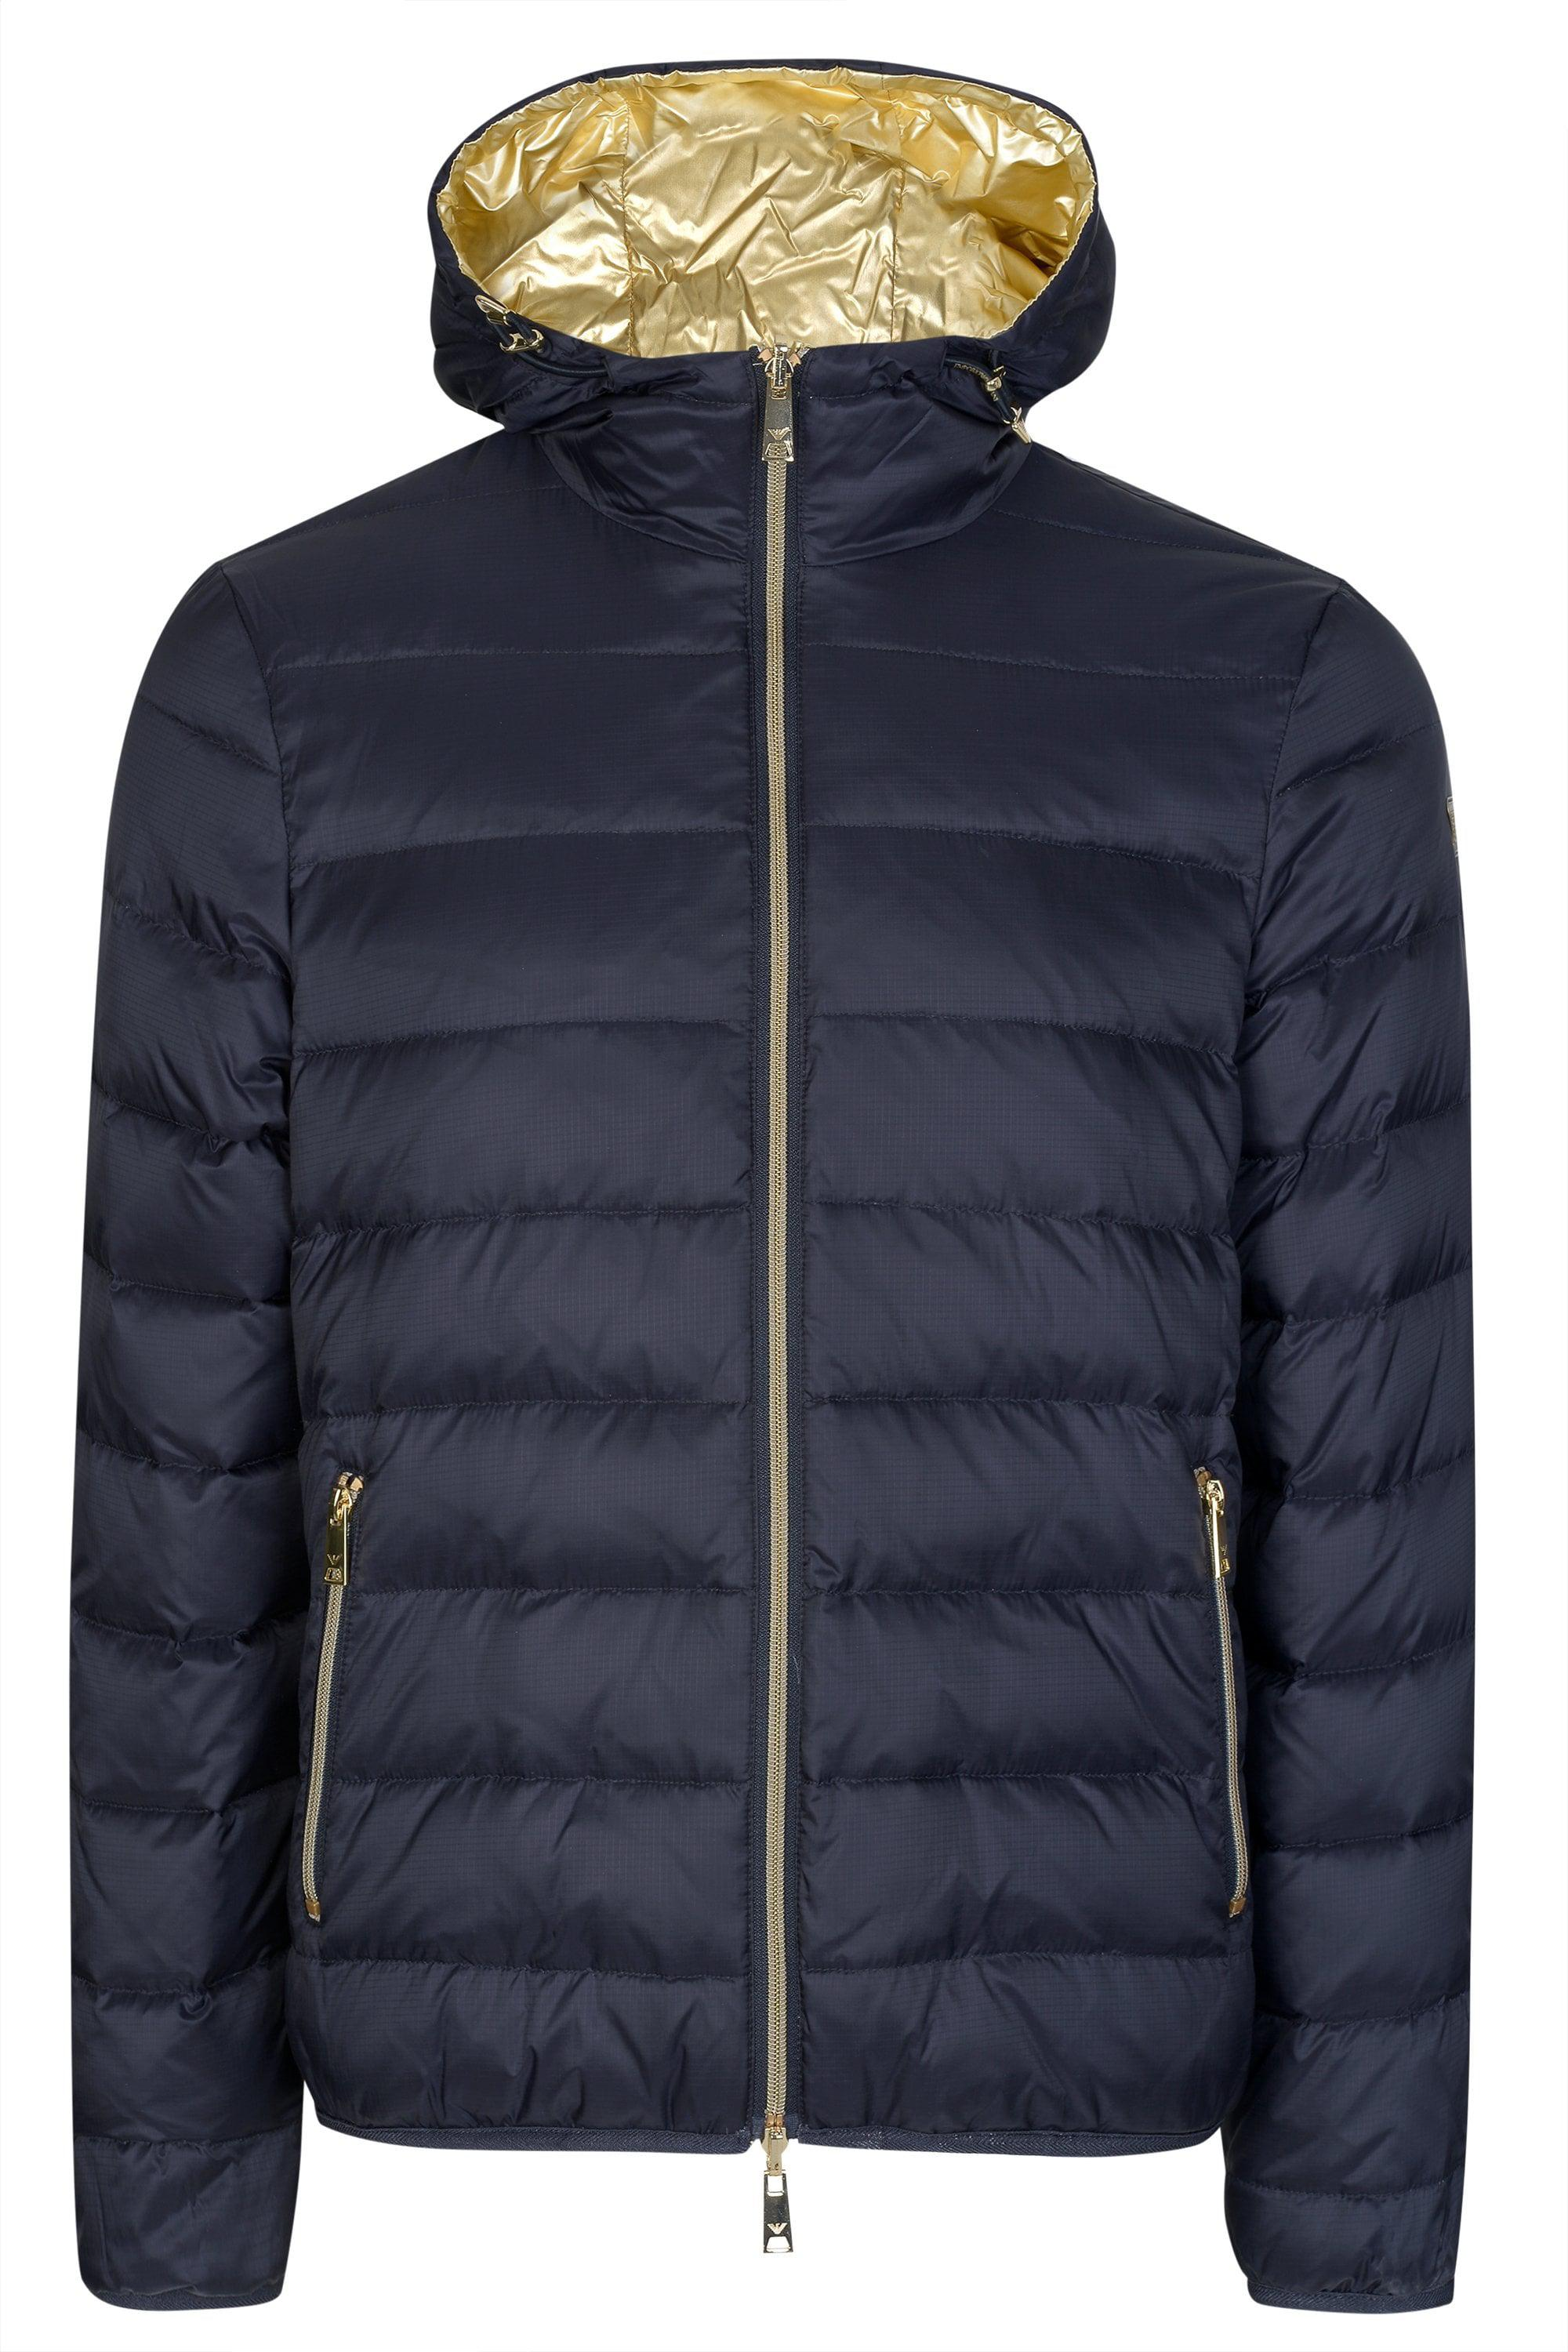 Emporio Armani Gold Lining Jacket in Blue for Men - Lyst 60aa5d6d4cb2